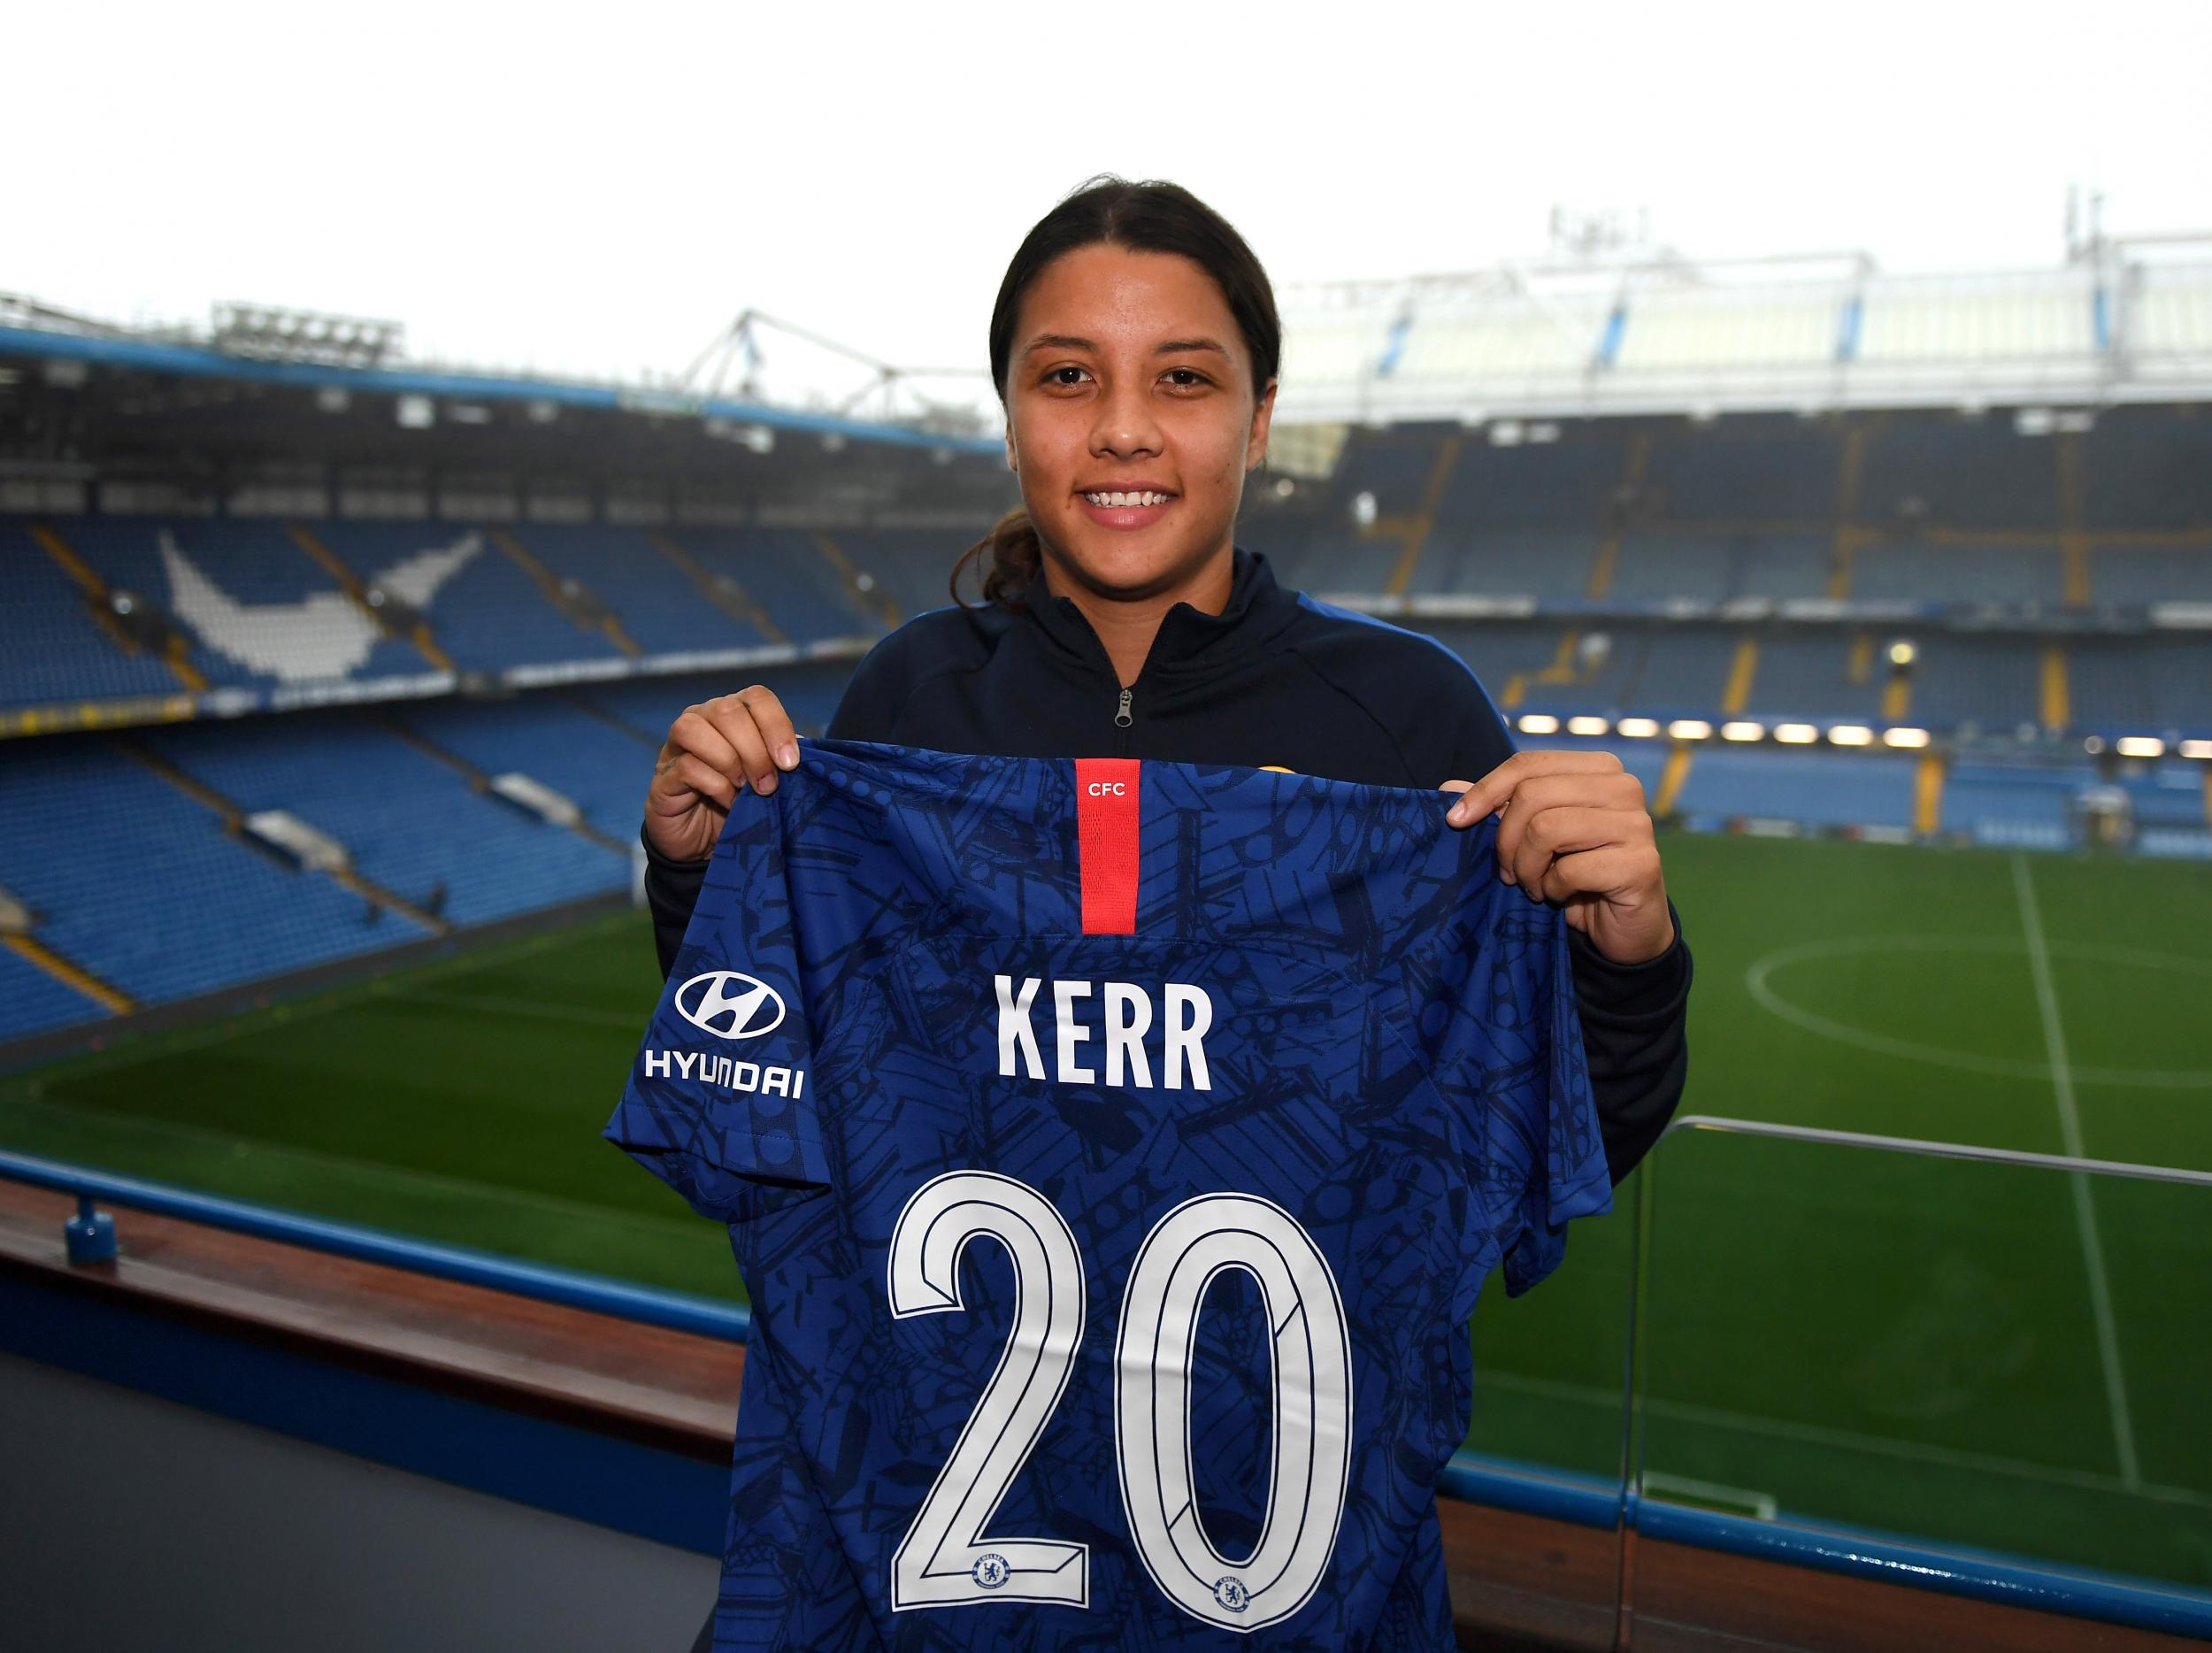 Sam Kerr: Women's Super League reacts to Chelsea's 'amazing' new signing - The Independent